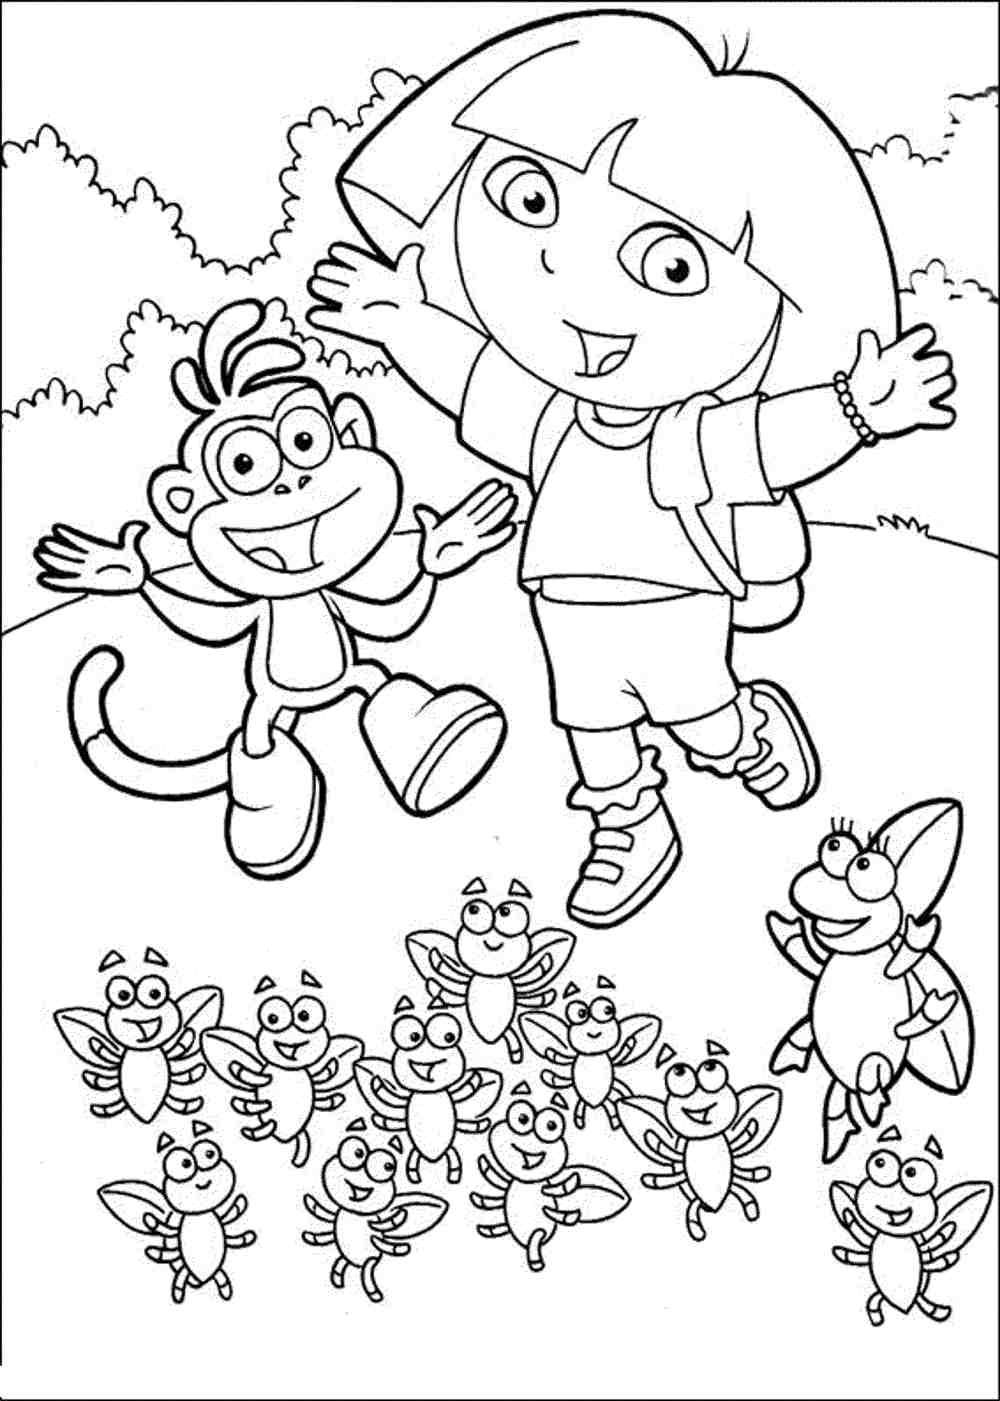 dora to color print download dora coloring pages to learn new things dora to color